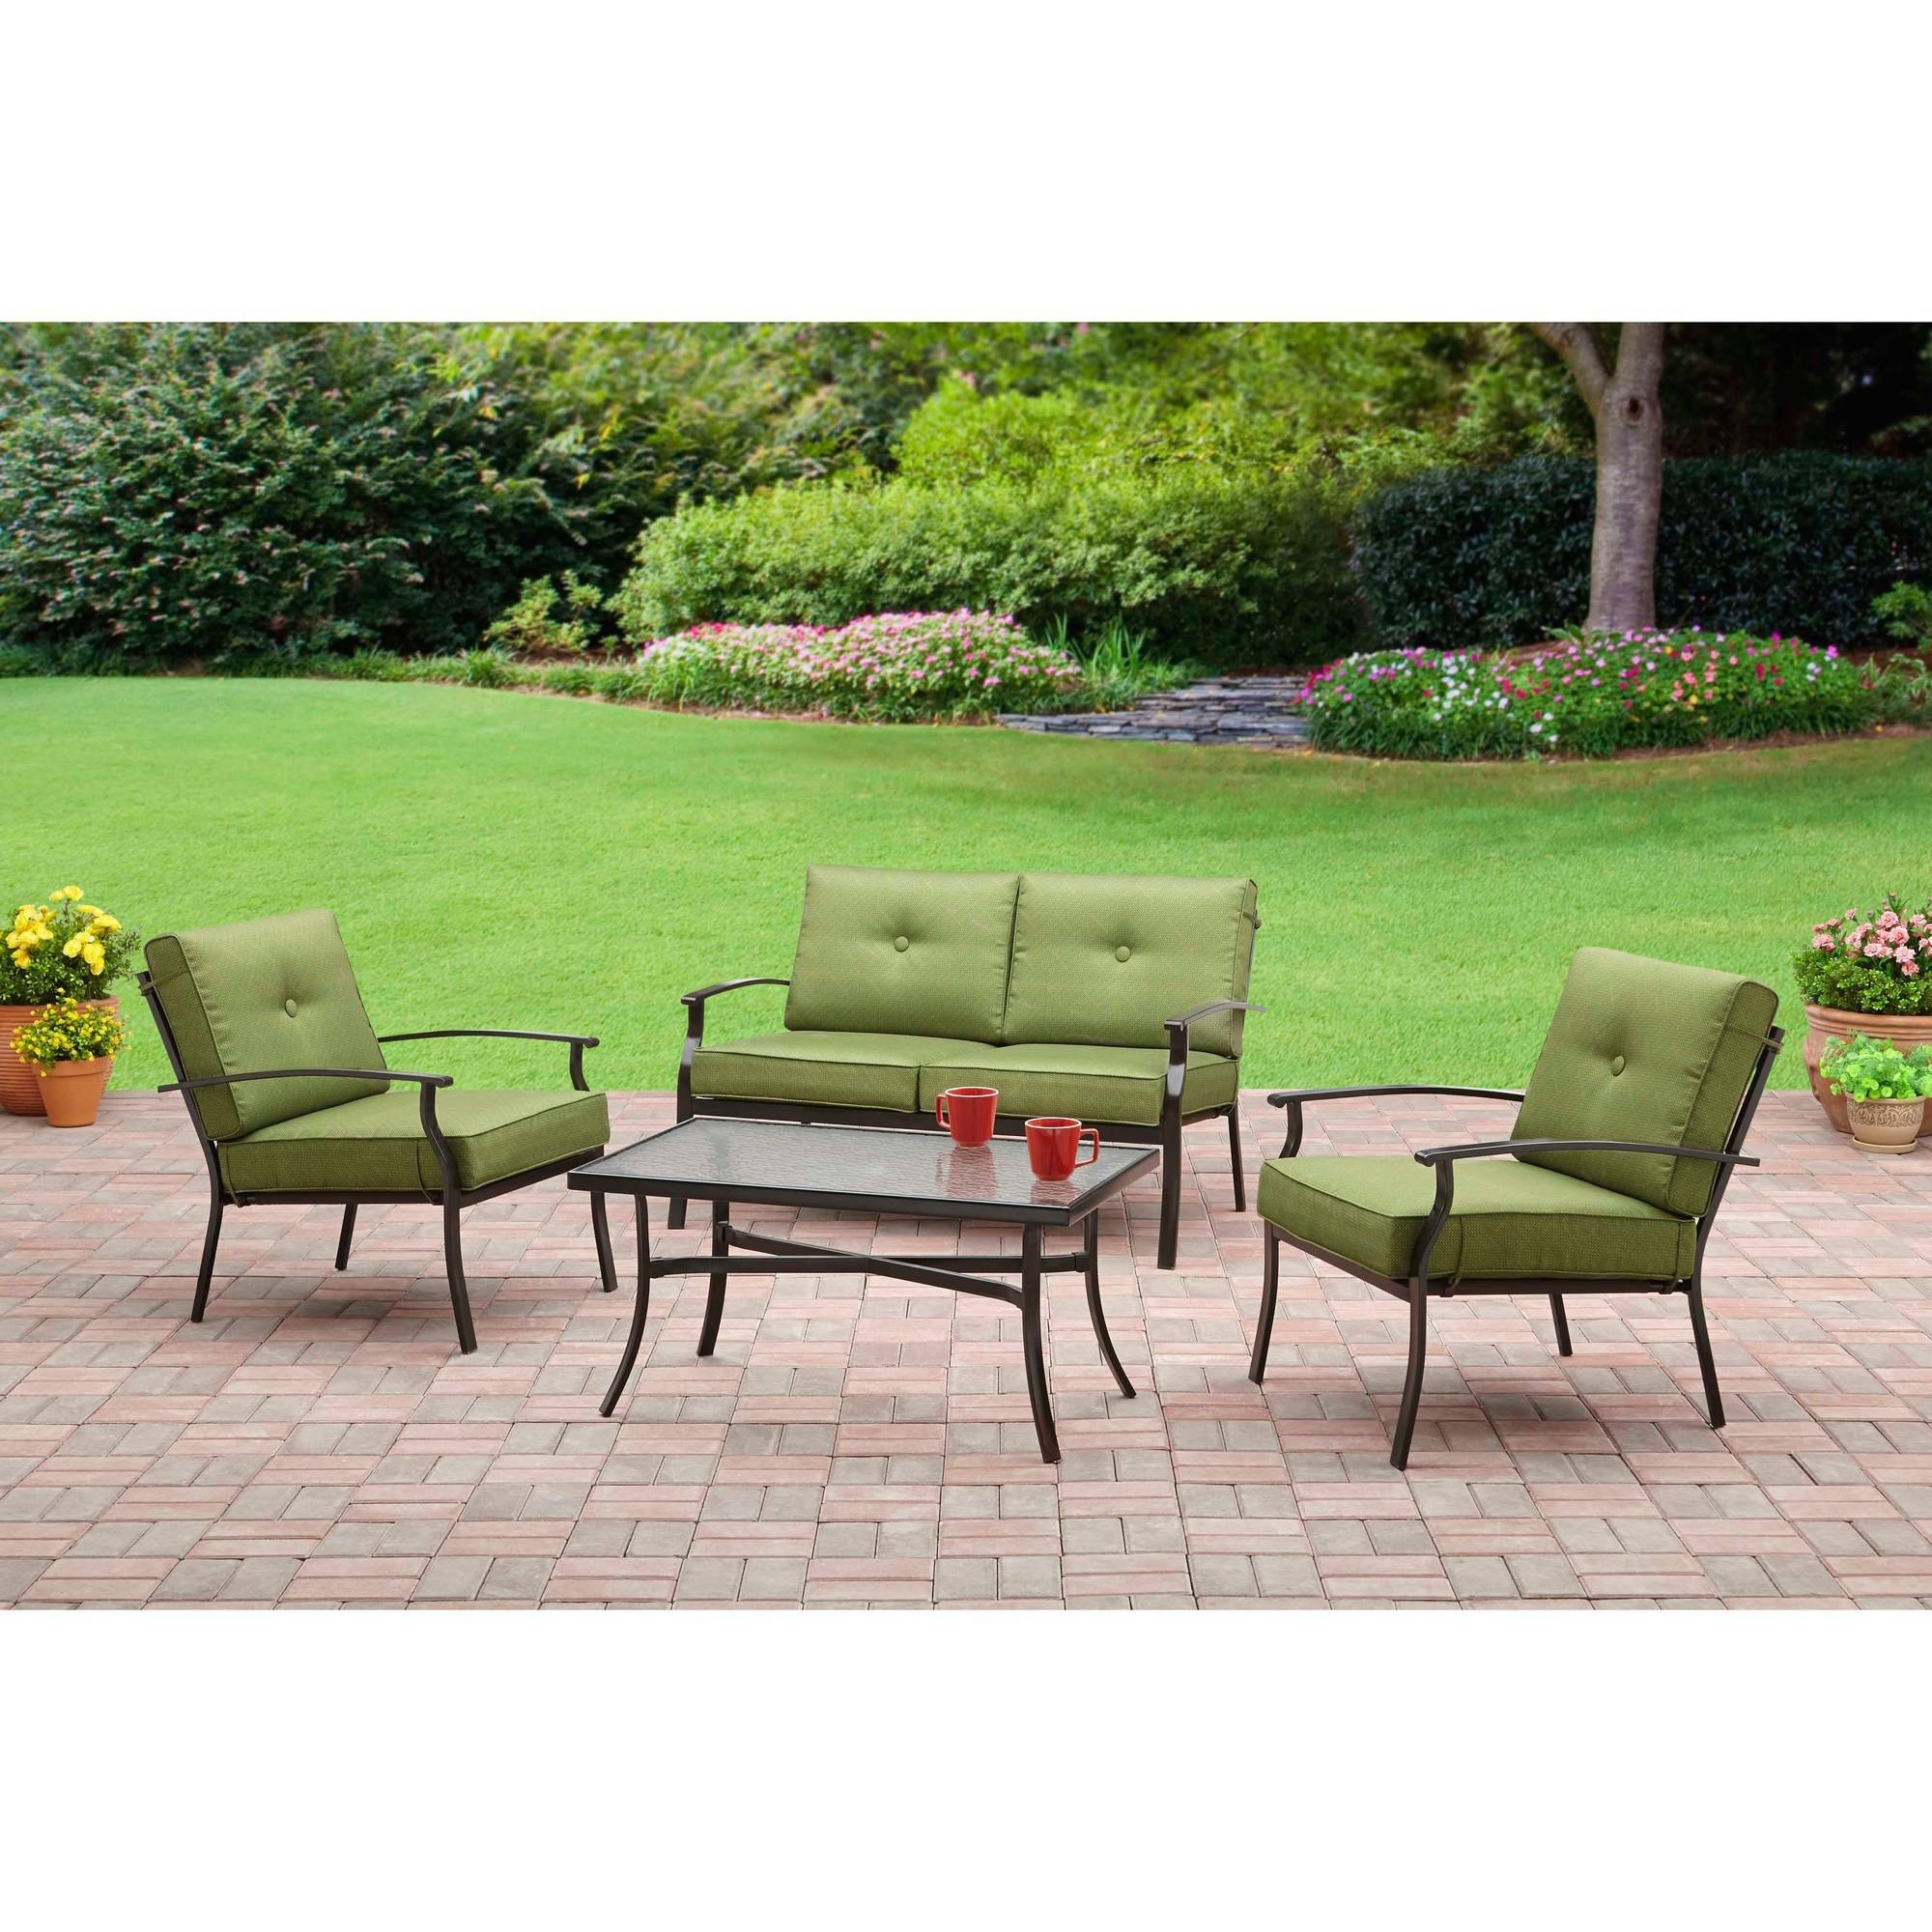 Well Liked 4 Piece Patio Conversation Sets Pertaining To Mainstays Bryant Place 4 Piece Conversation Set, Green – Walmart (View 18 of 20)